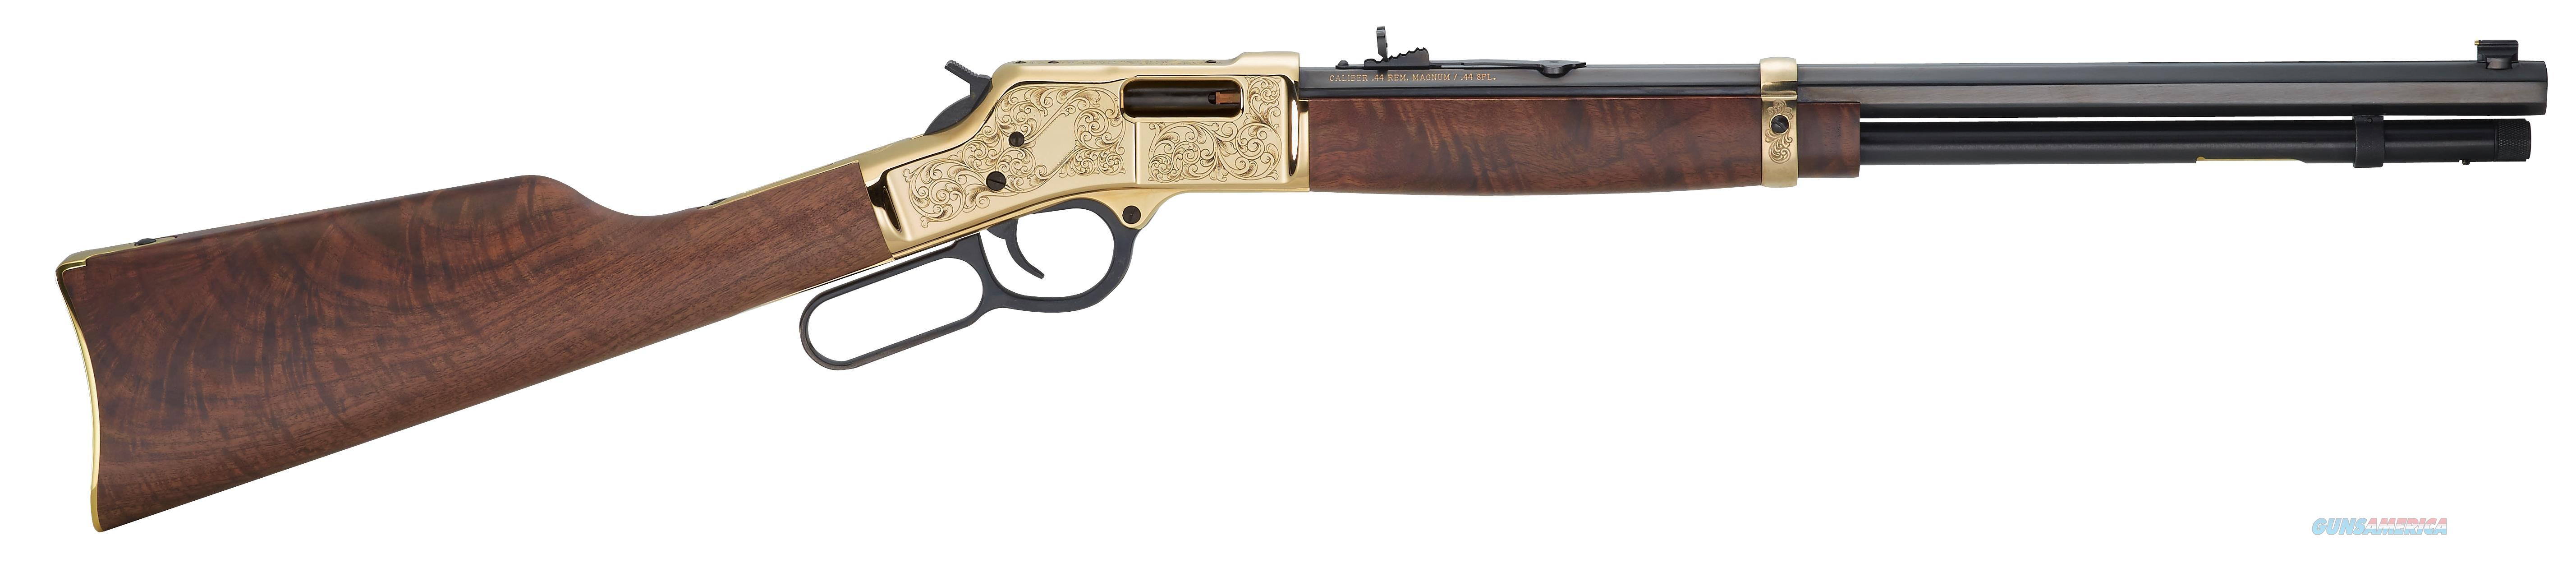 "Henry H006d3 Big Boy Deluxe Engraved 3Rd Edition 44 Magnum Lever 44 Remington Magnum 20"" 10+1 American Walnut Stk Blued Barrel/Brass Receiver H006D3  Guns > Rifles > H Misc Rifles"